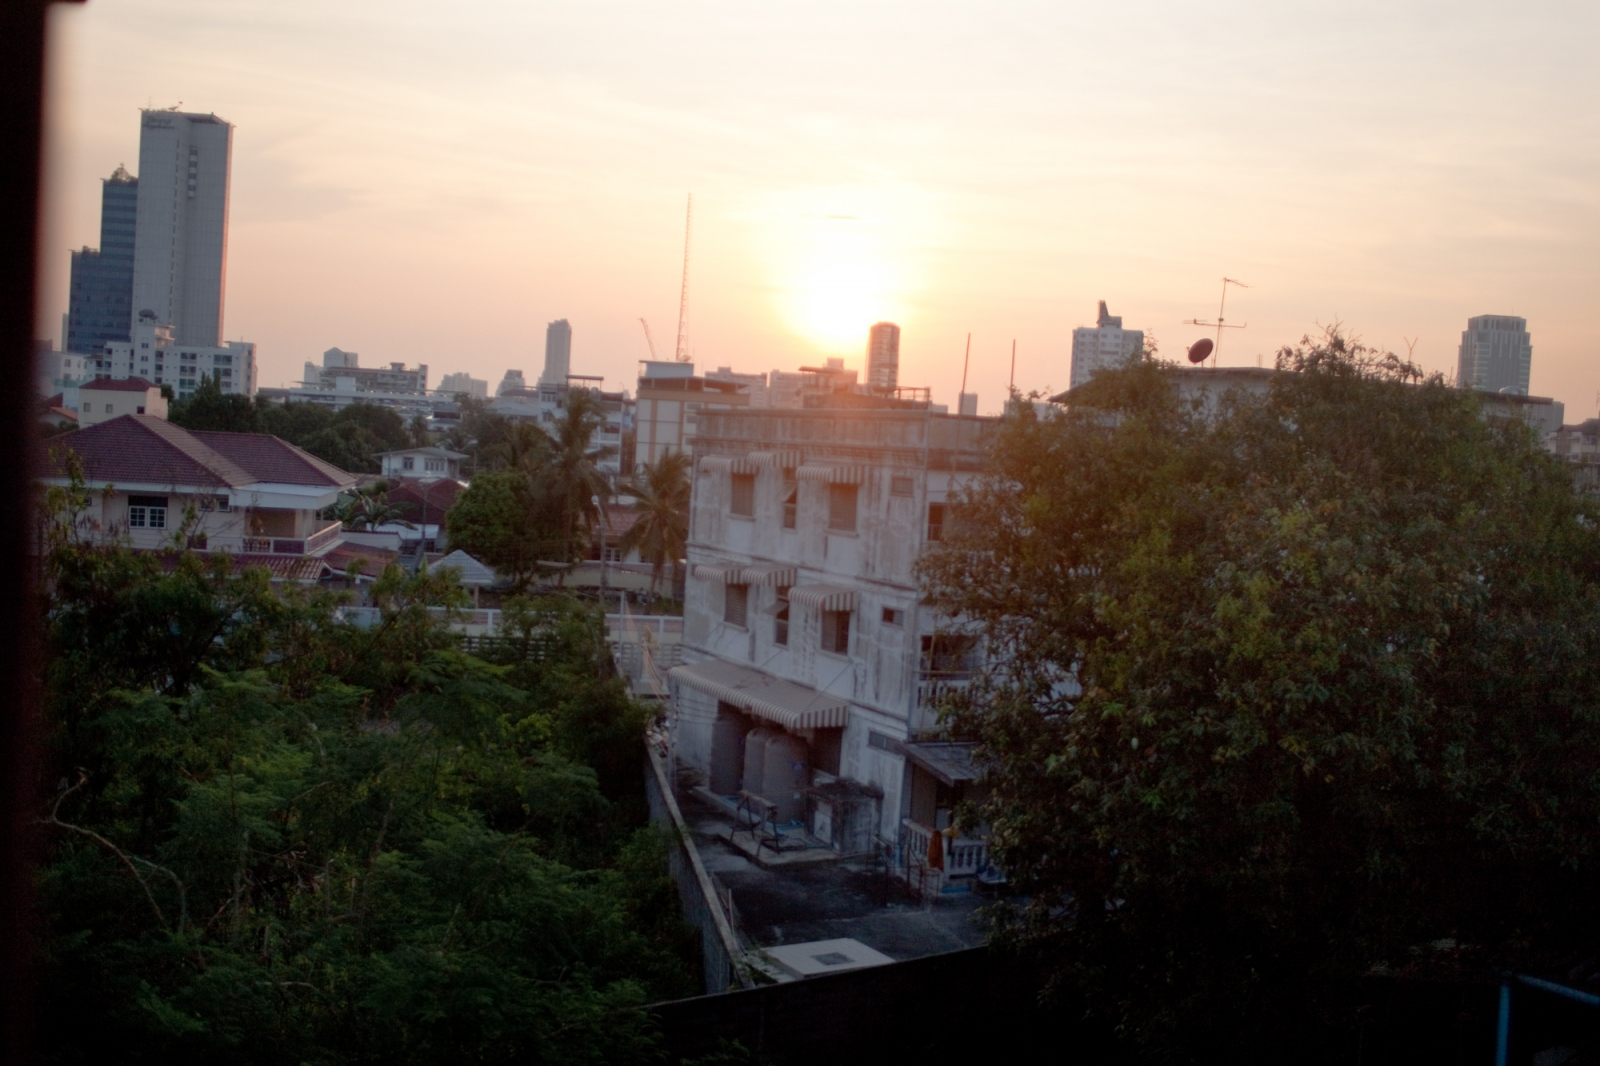 A view of the city of Bangkok from a low income building that houses many different people who are seeking asylum from their country. The rooms have very little air flow which makes it extremely hot all day. Apr. 2015